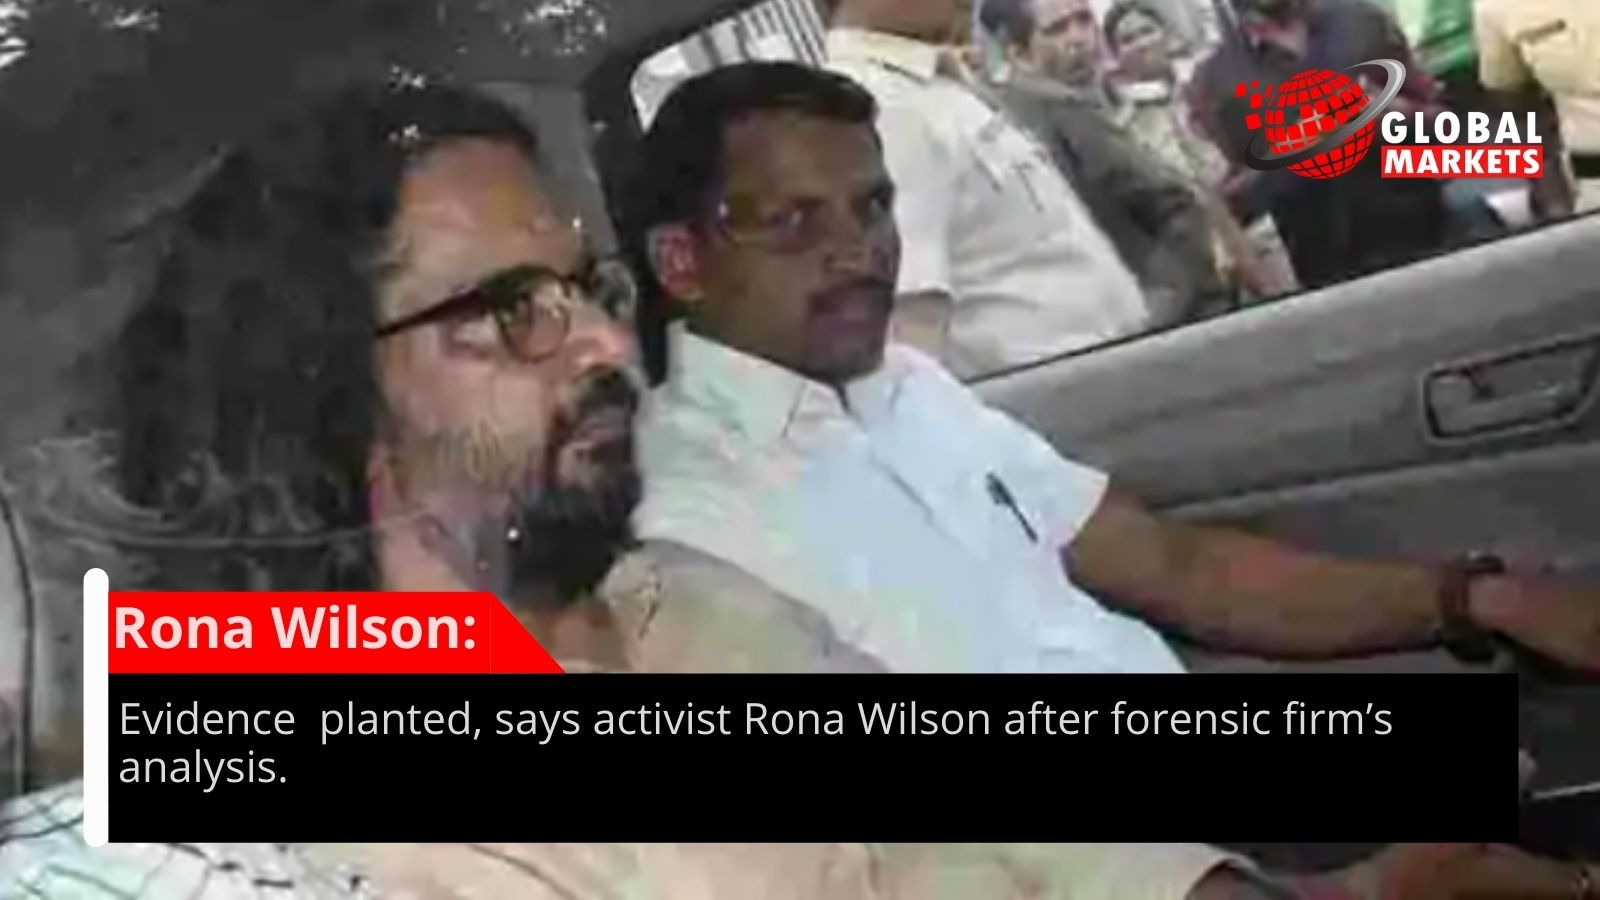 Proof planted, says dissident Rona Wilson after legal company's examination